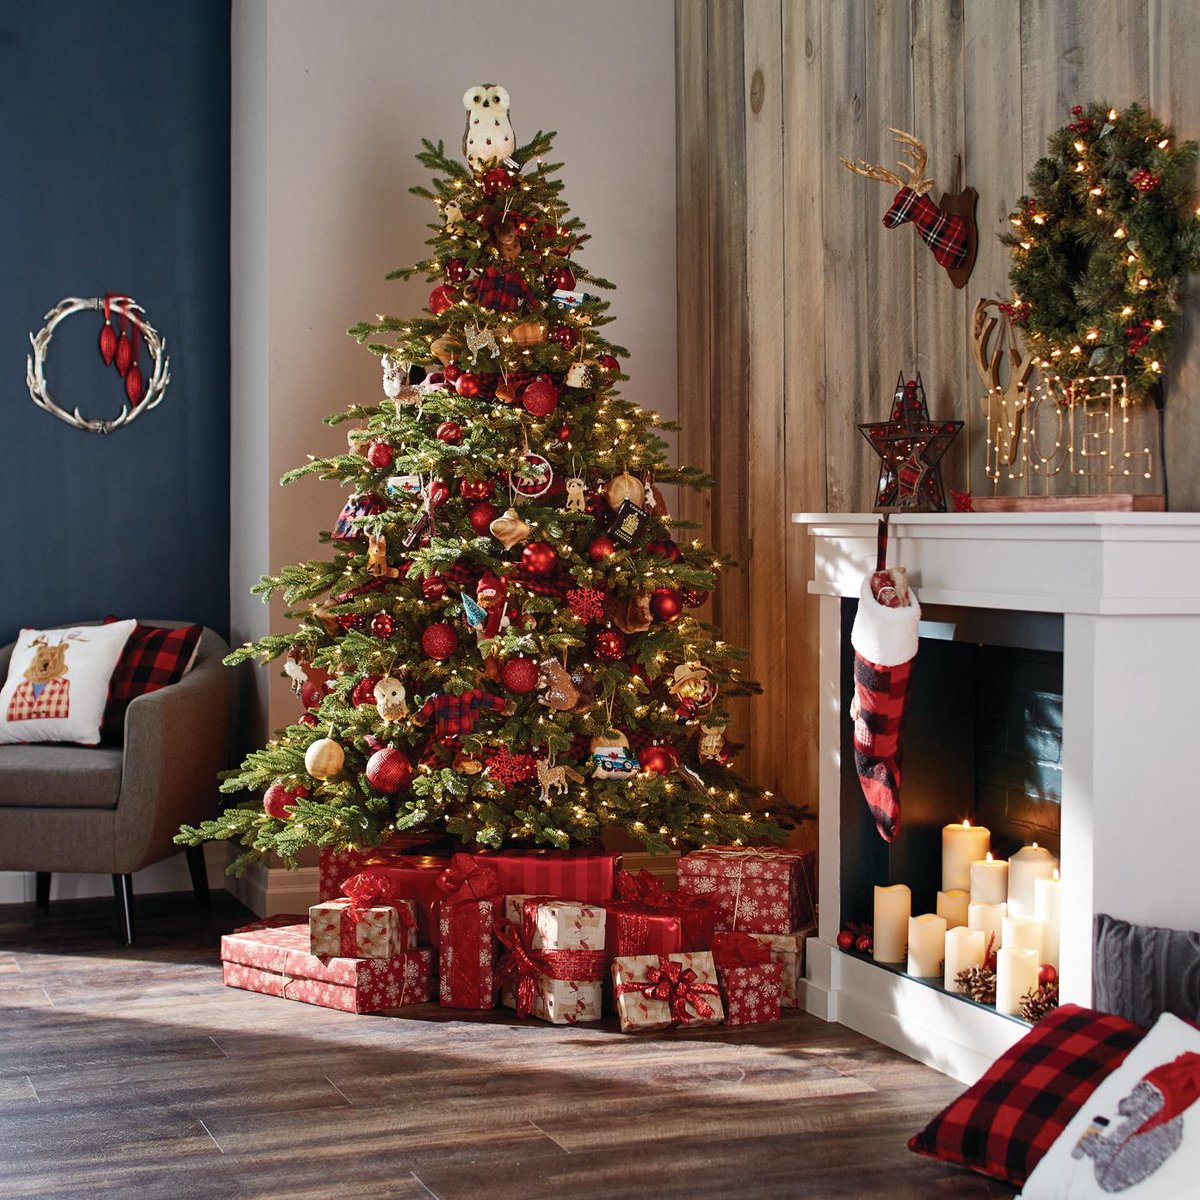 Canadian Tire On Twitter Celebrate Christmas In Canada Bold Hues Festive Plaids And Rustic Accents Make The Perfect Traditional Setting Https T Co Stdjyieov6 Https T Co Feboxshvml